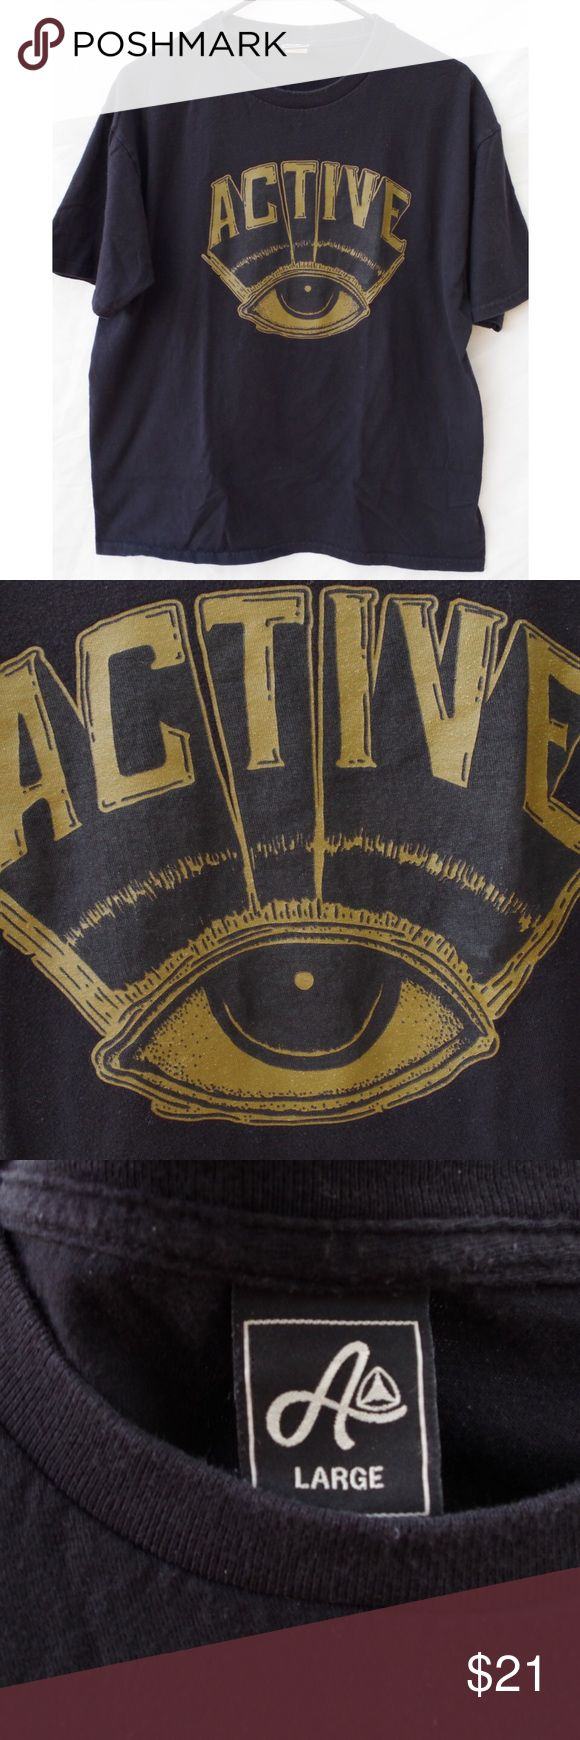 Active Skate Third Eye Gold Graphic T-shirt Active brand. Size large. Black t-shirt with golden eye logo on front. Good condition light wear no significant flaws. FREE SURPRISE GIFT WITH EVERY ORDER SAME DAY SHIPPING PRICE NEGOTIABLE, willing to sell for $17 elsewhere! Tops Tees - Short Sleeve